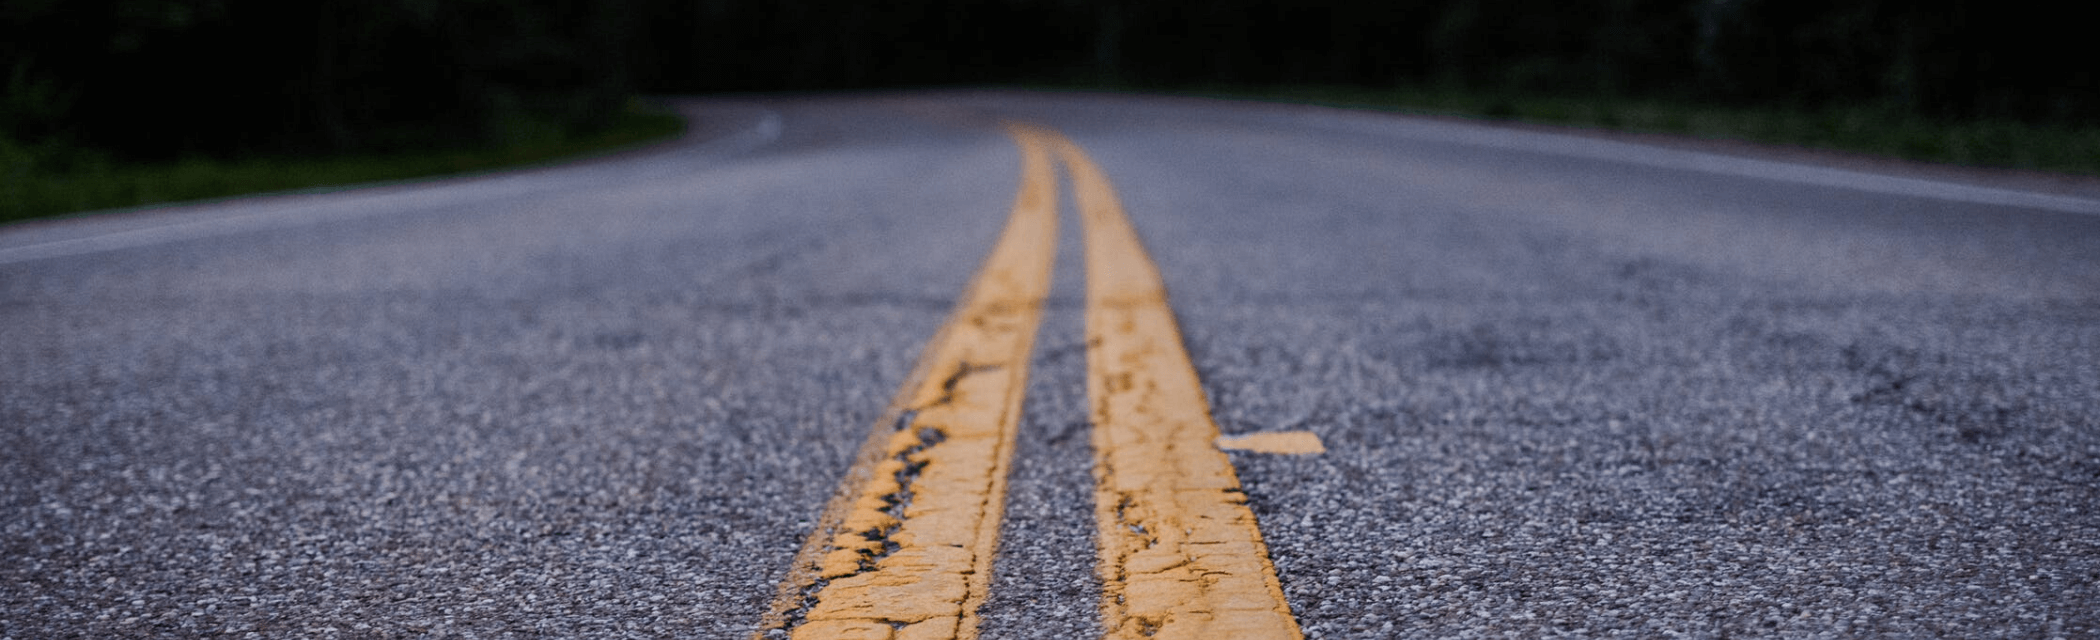 A primer on Agile product roadmaps: 4 principles you need to know